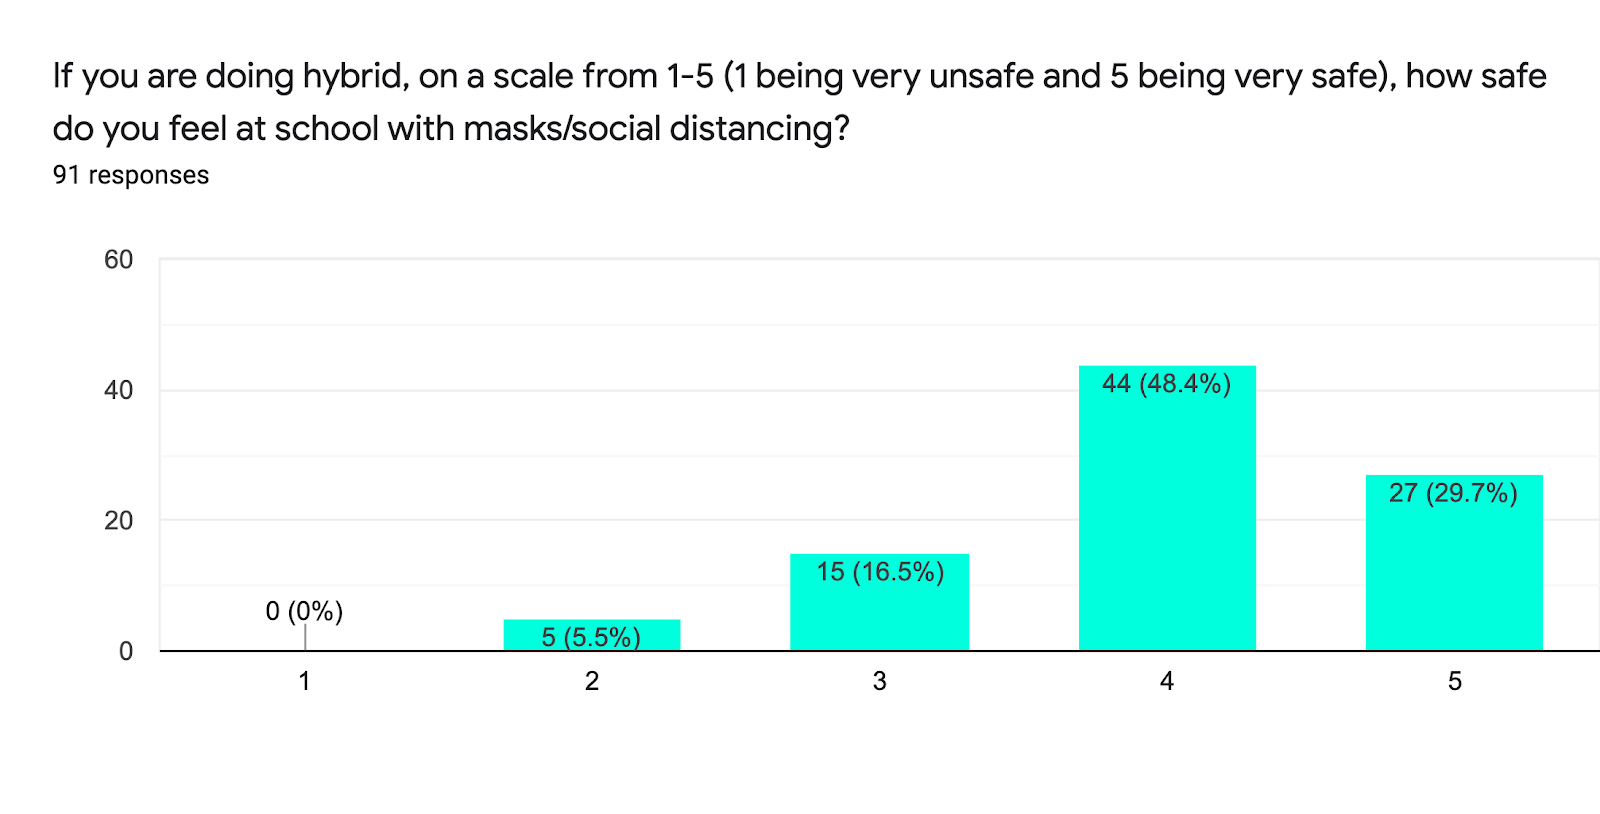 Forms response chart. Question title: If you are doing hybrid, on a scale from 1-5 (1 being very unsafe and 5 being very safe), how safe do you feel at school with masks/social distancing?. Number of responses: 91 responses.